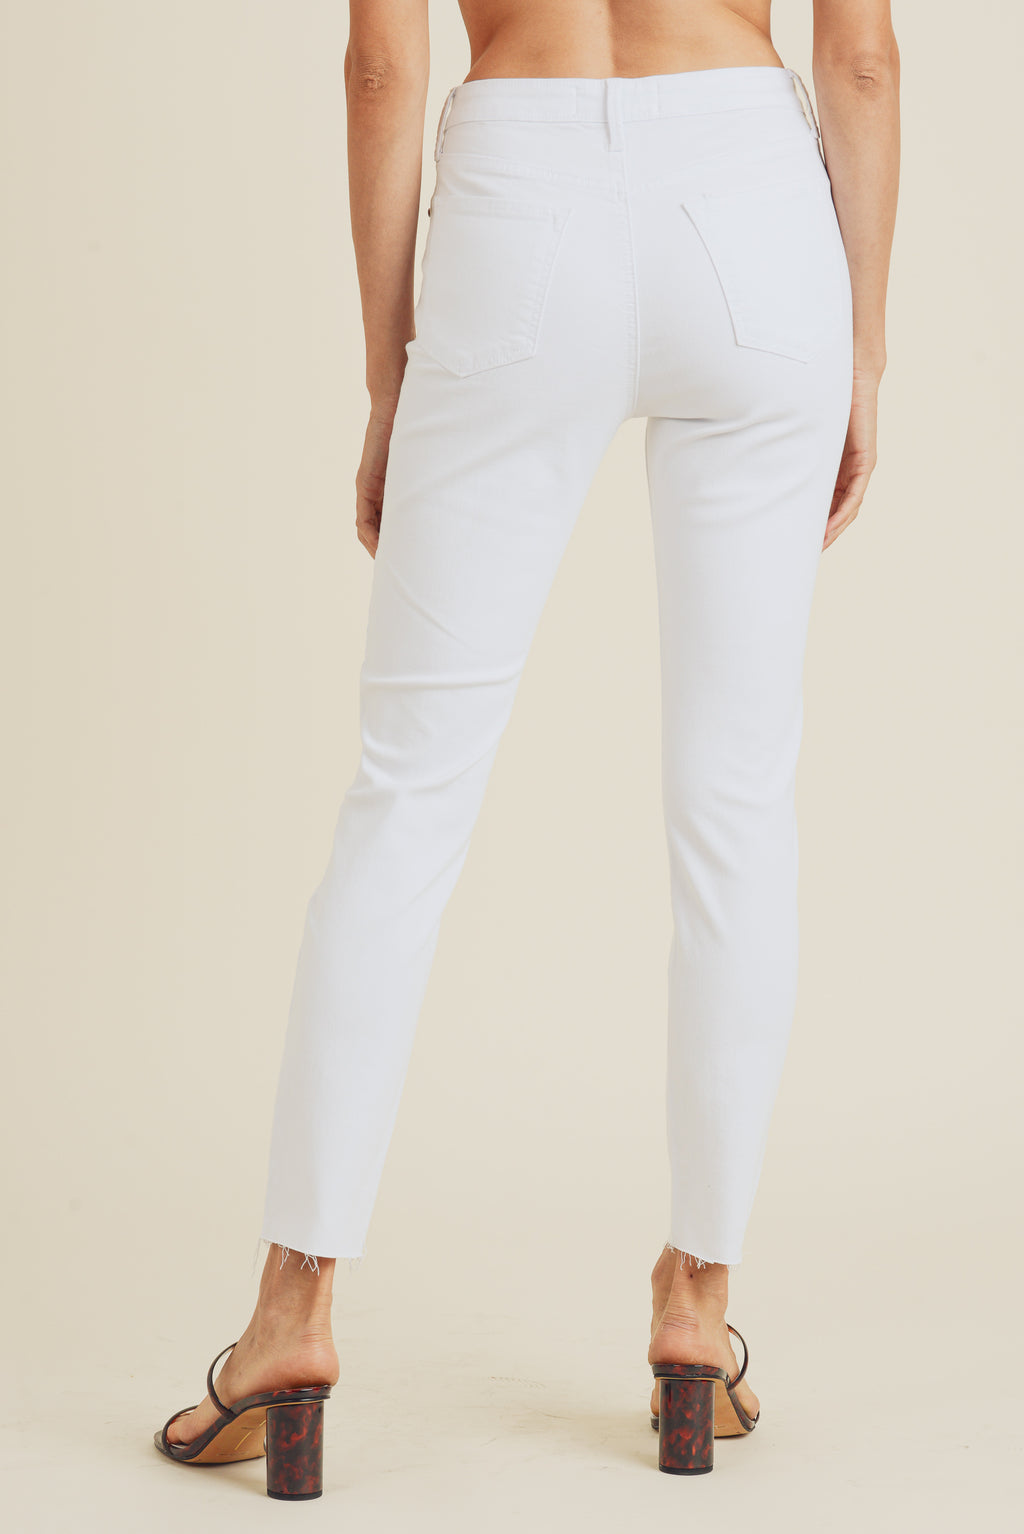 Scissor Cut Skinny Jeans in White